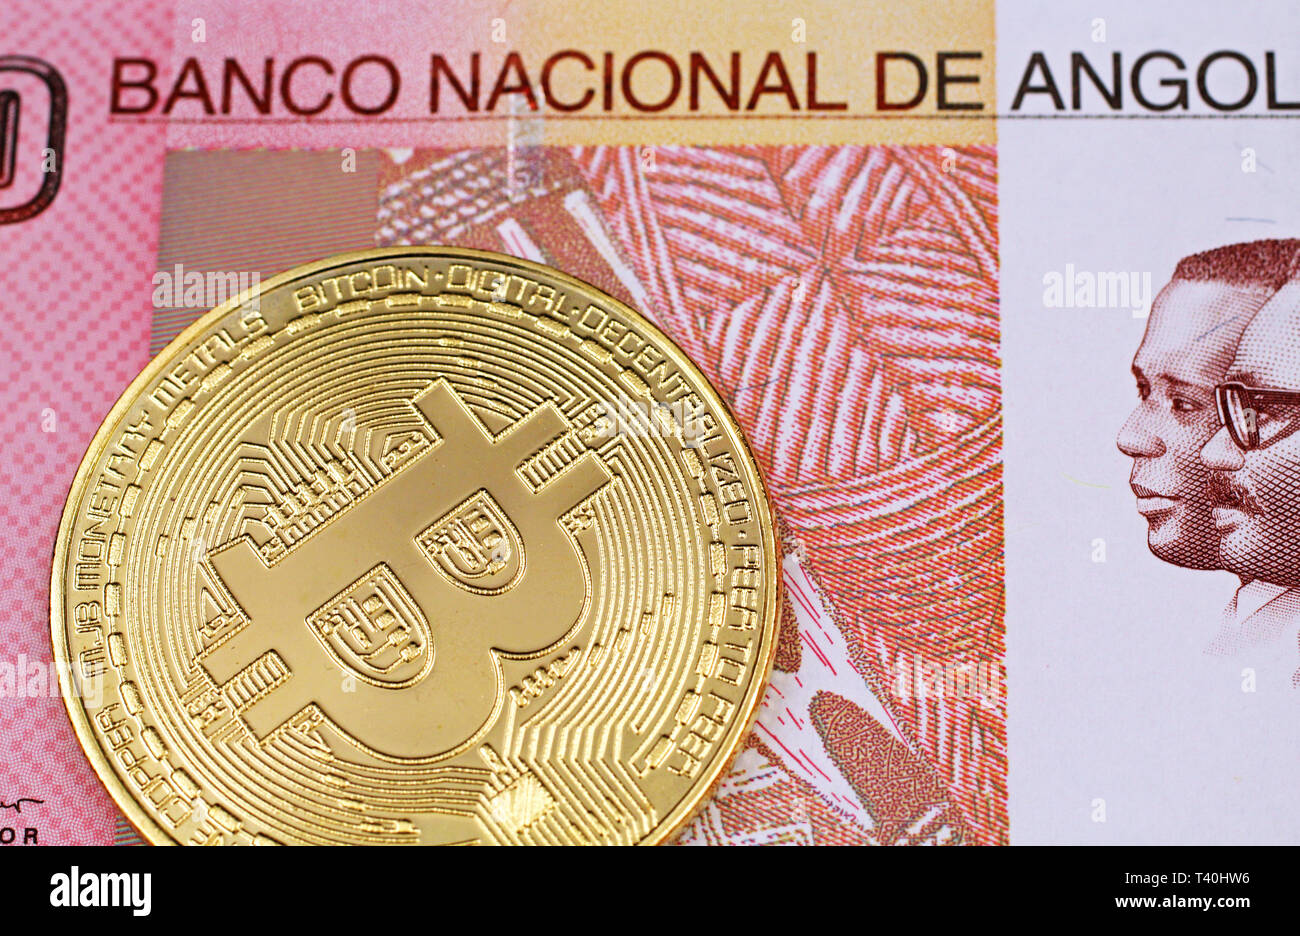 A macro image of a physical, golden Bitcoin with a colorful one hundred Angolan kwanza bank note close up Stock Photo